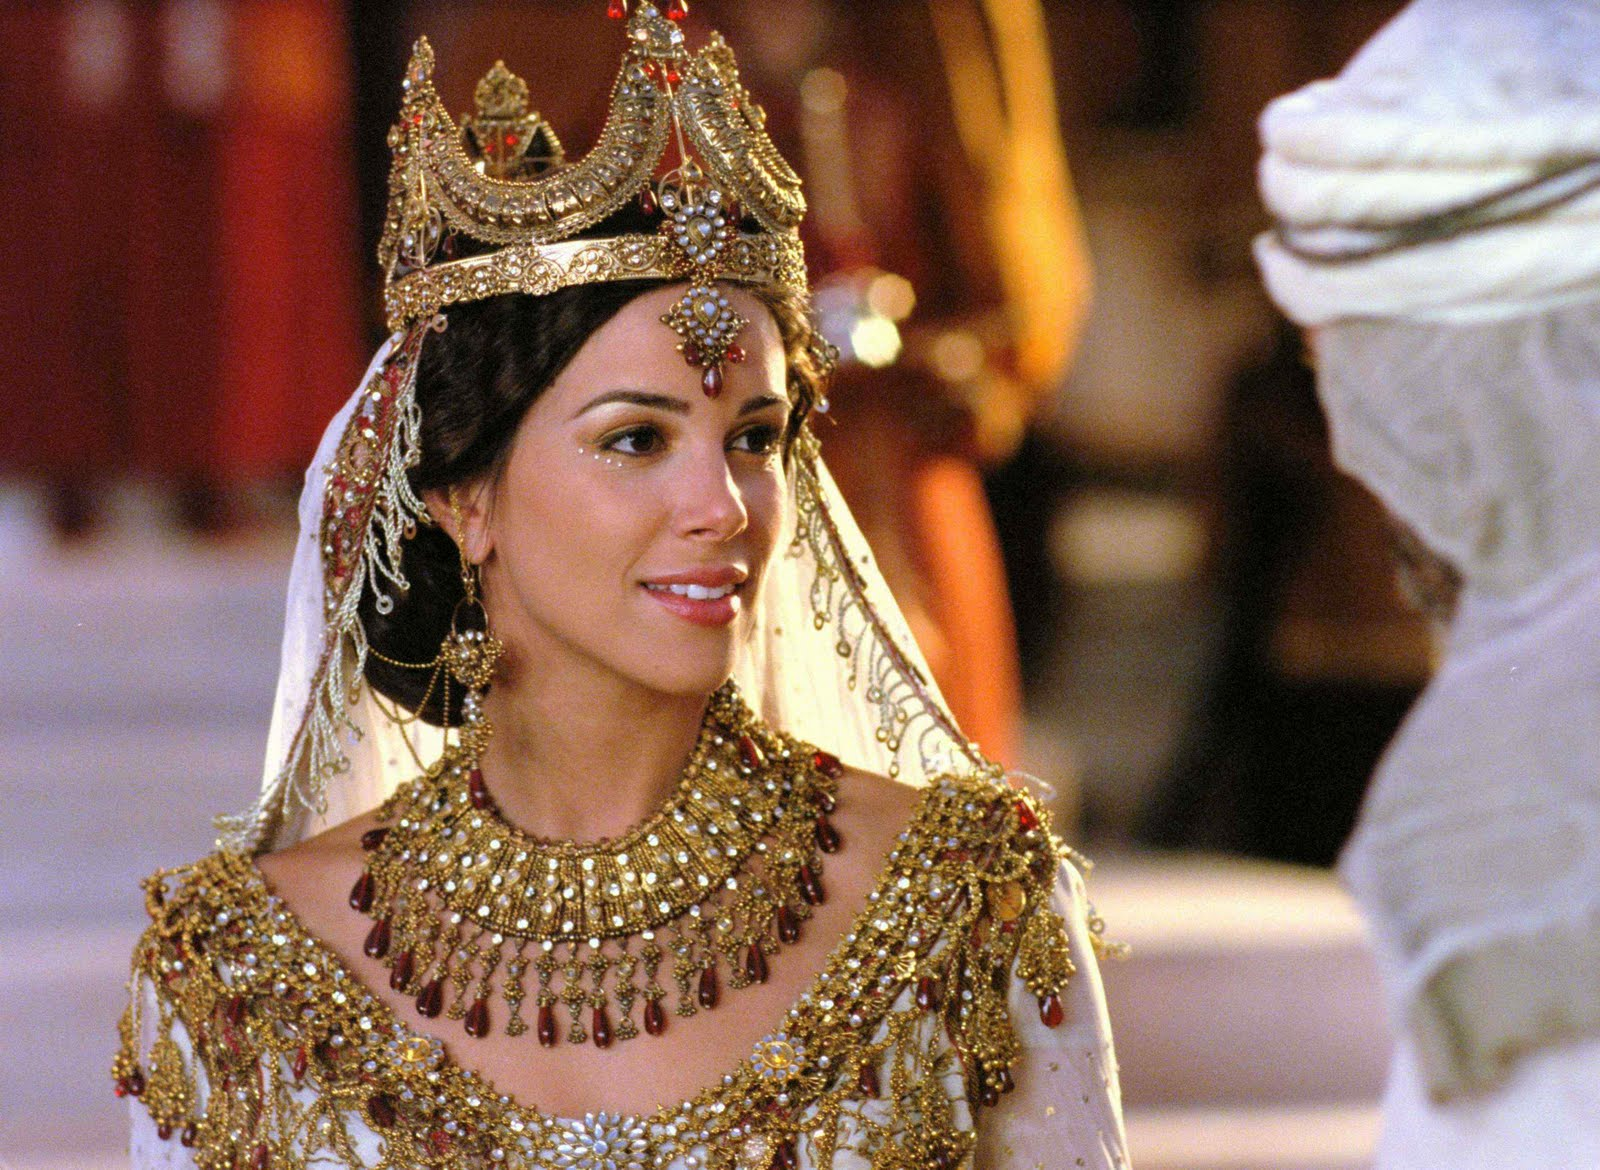 1000+ images about Queen Esther Inspirations on Pinterest ...